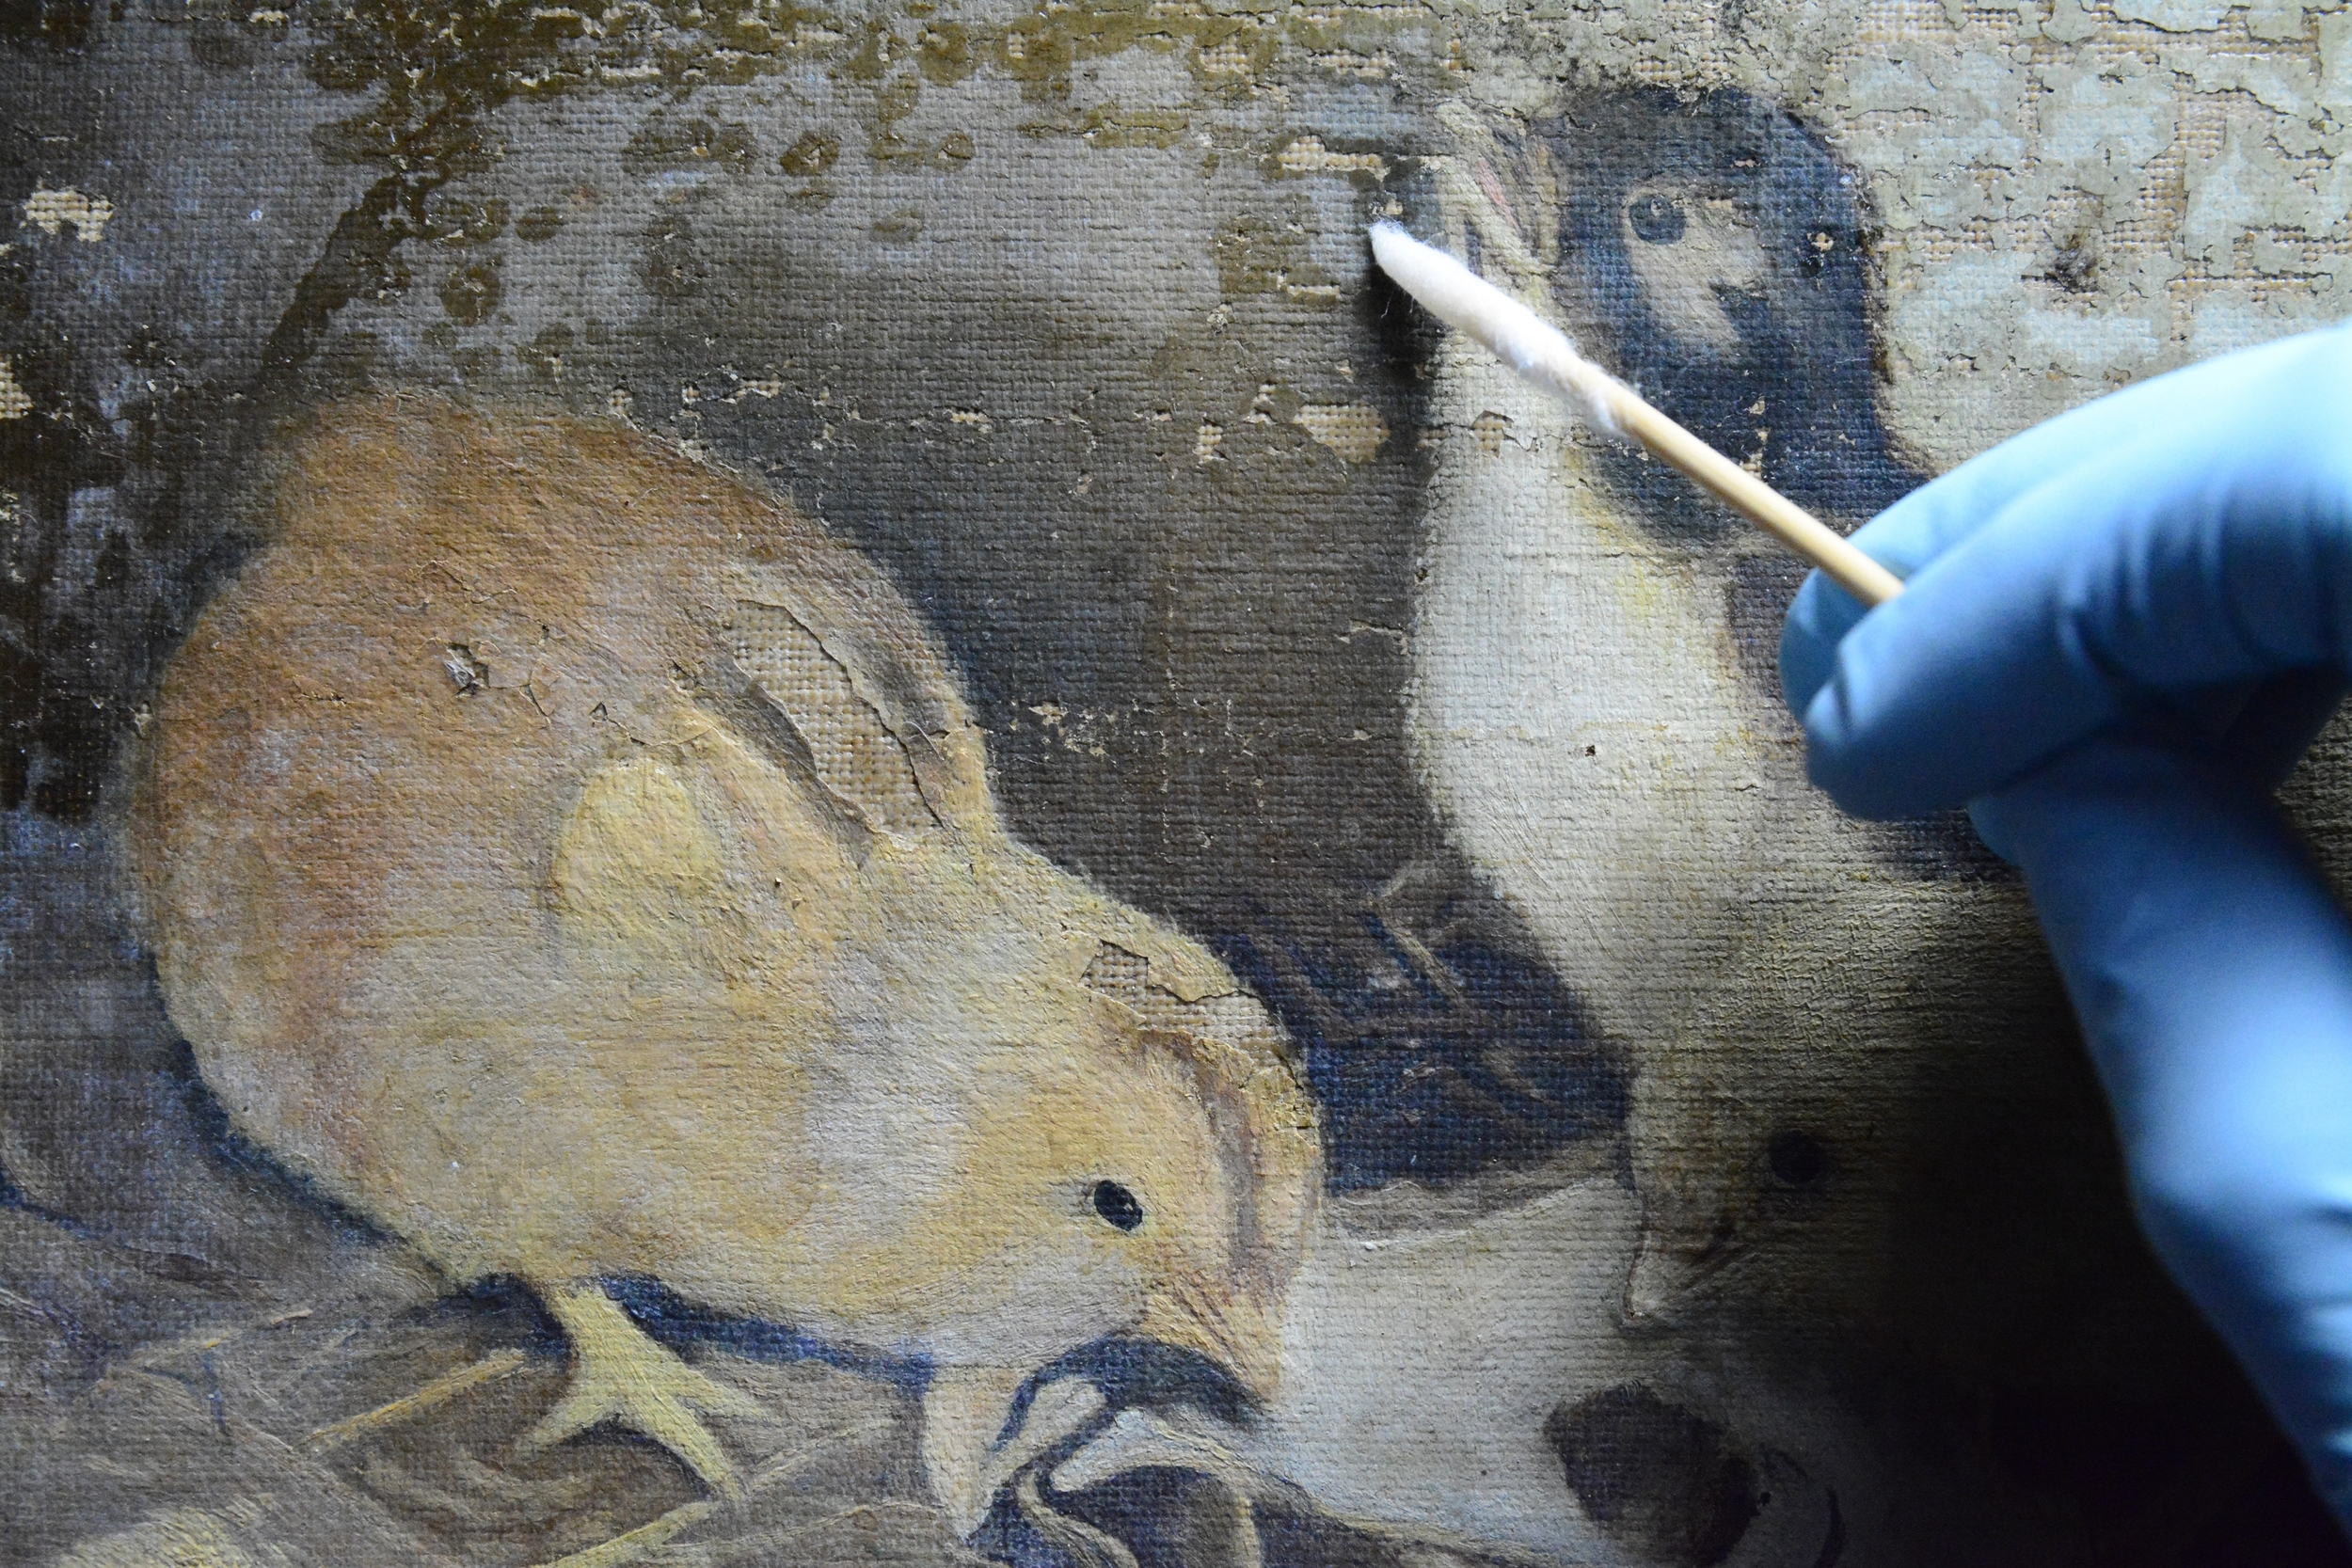 During the removal of excess adhesive from the surface of the painting.